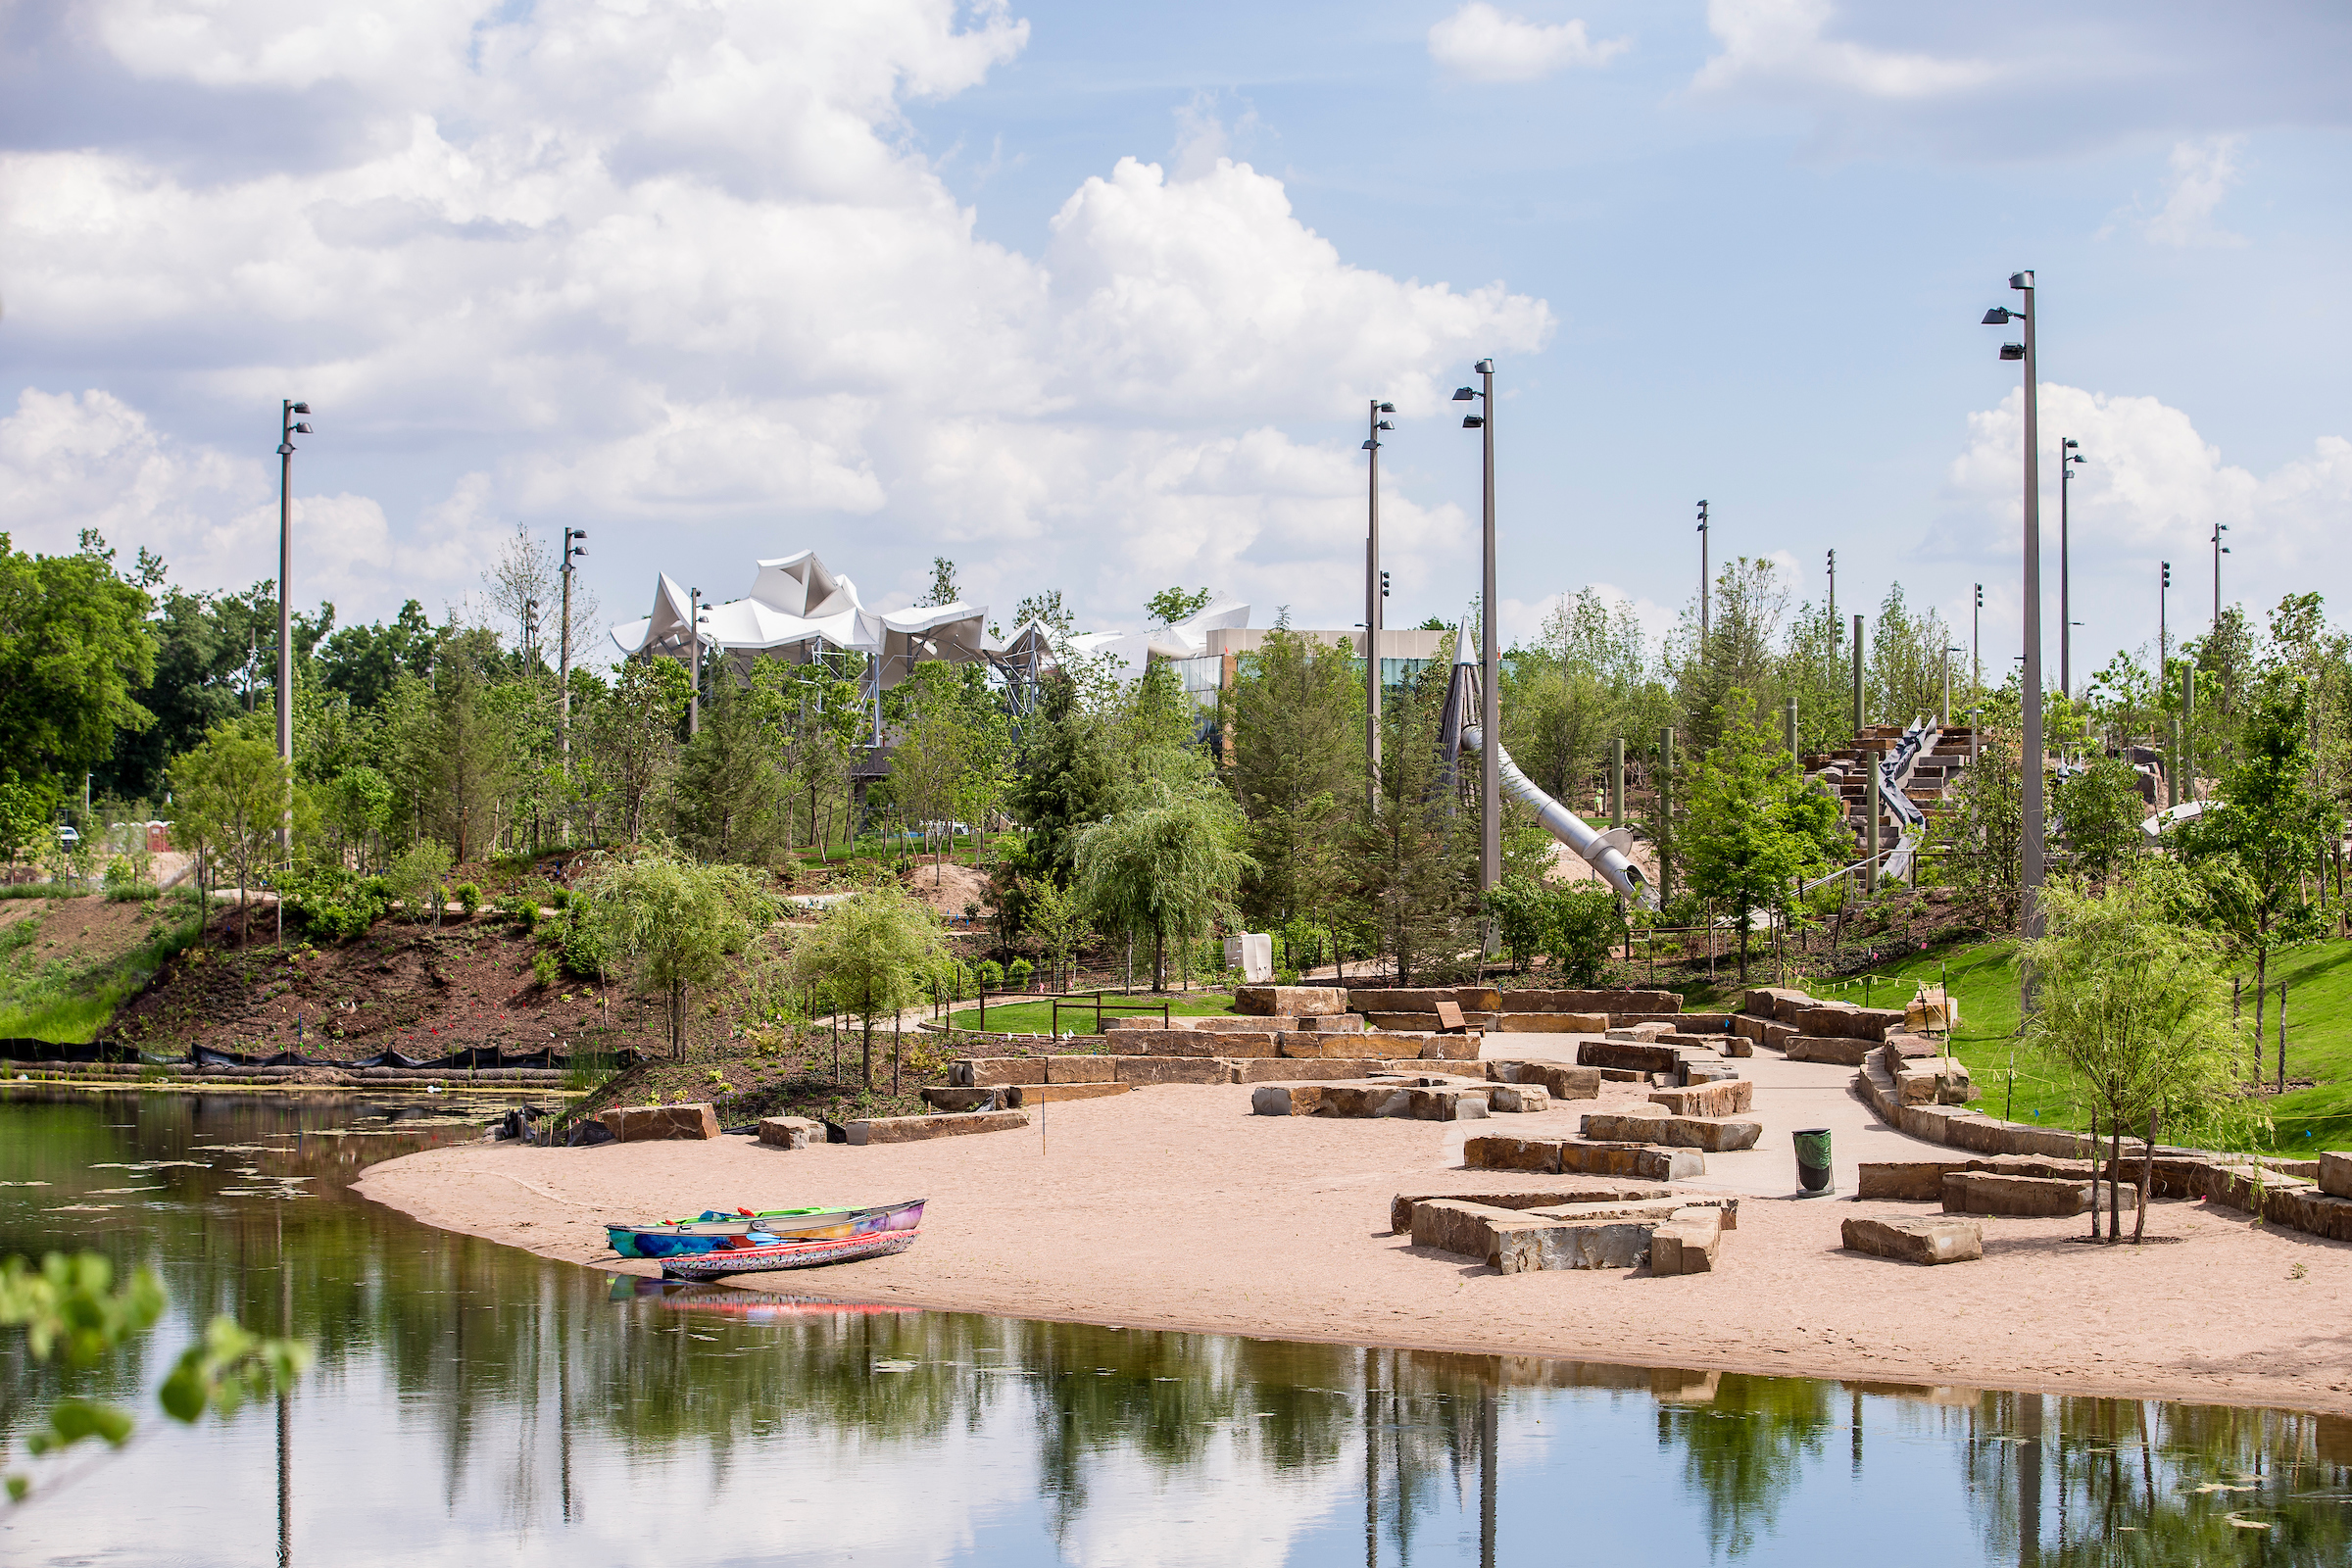 A park with benched seating on a manmade shore. There are silver slides in the background.